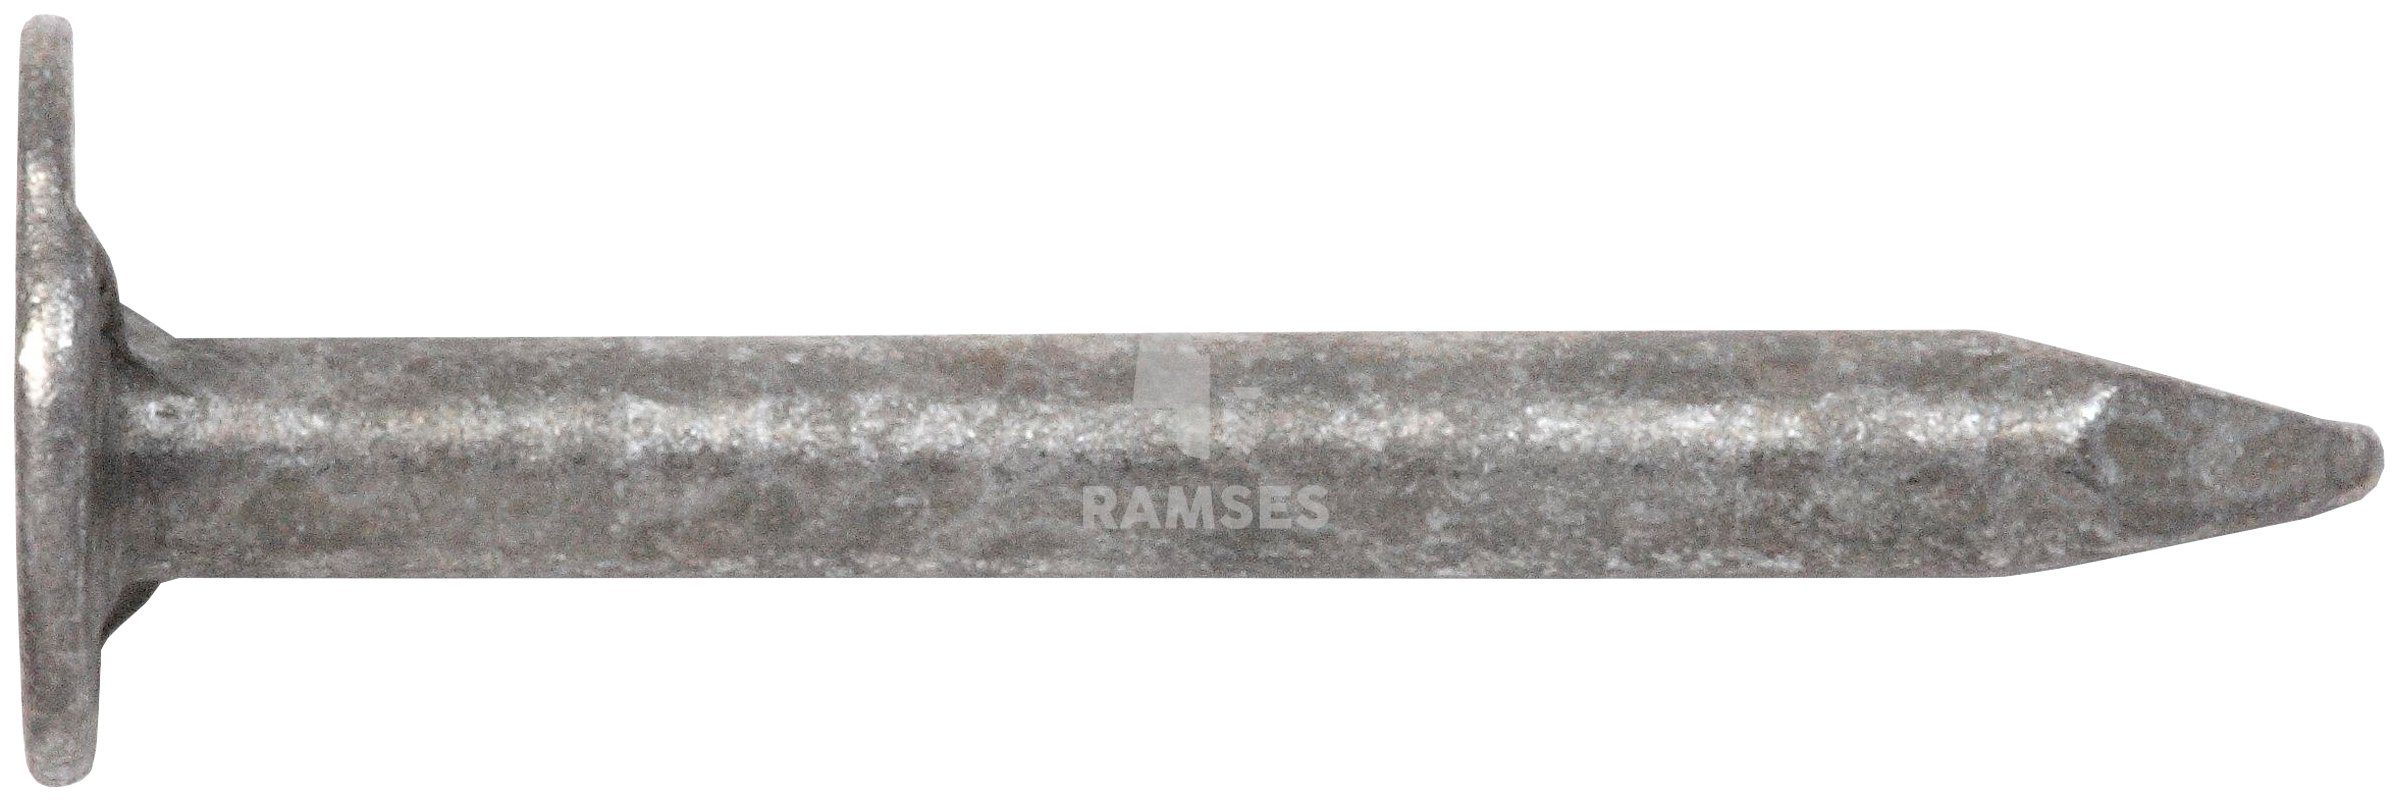 RAMSES Nagel , Dachpappstifte DIN 1160 2,8 x 40 mm Stahl